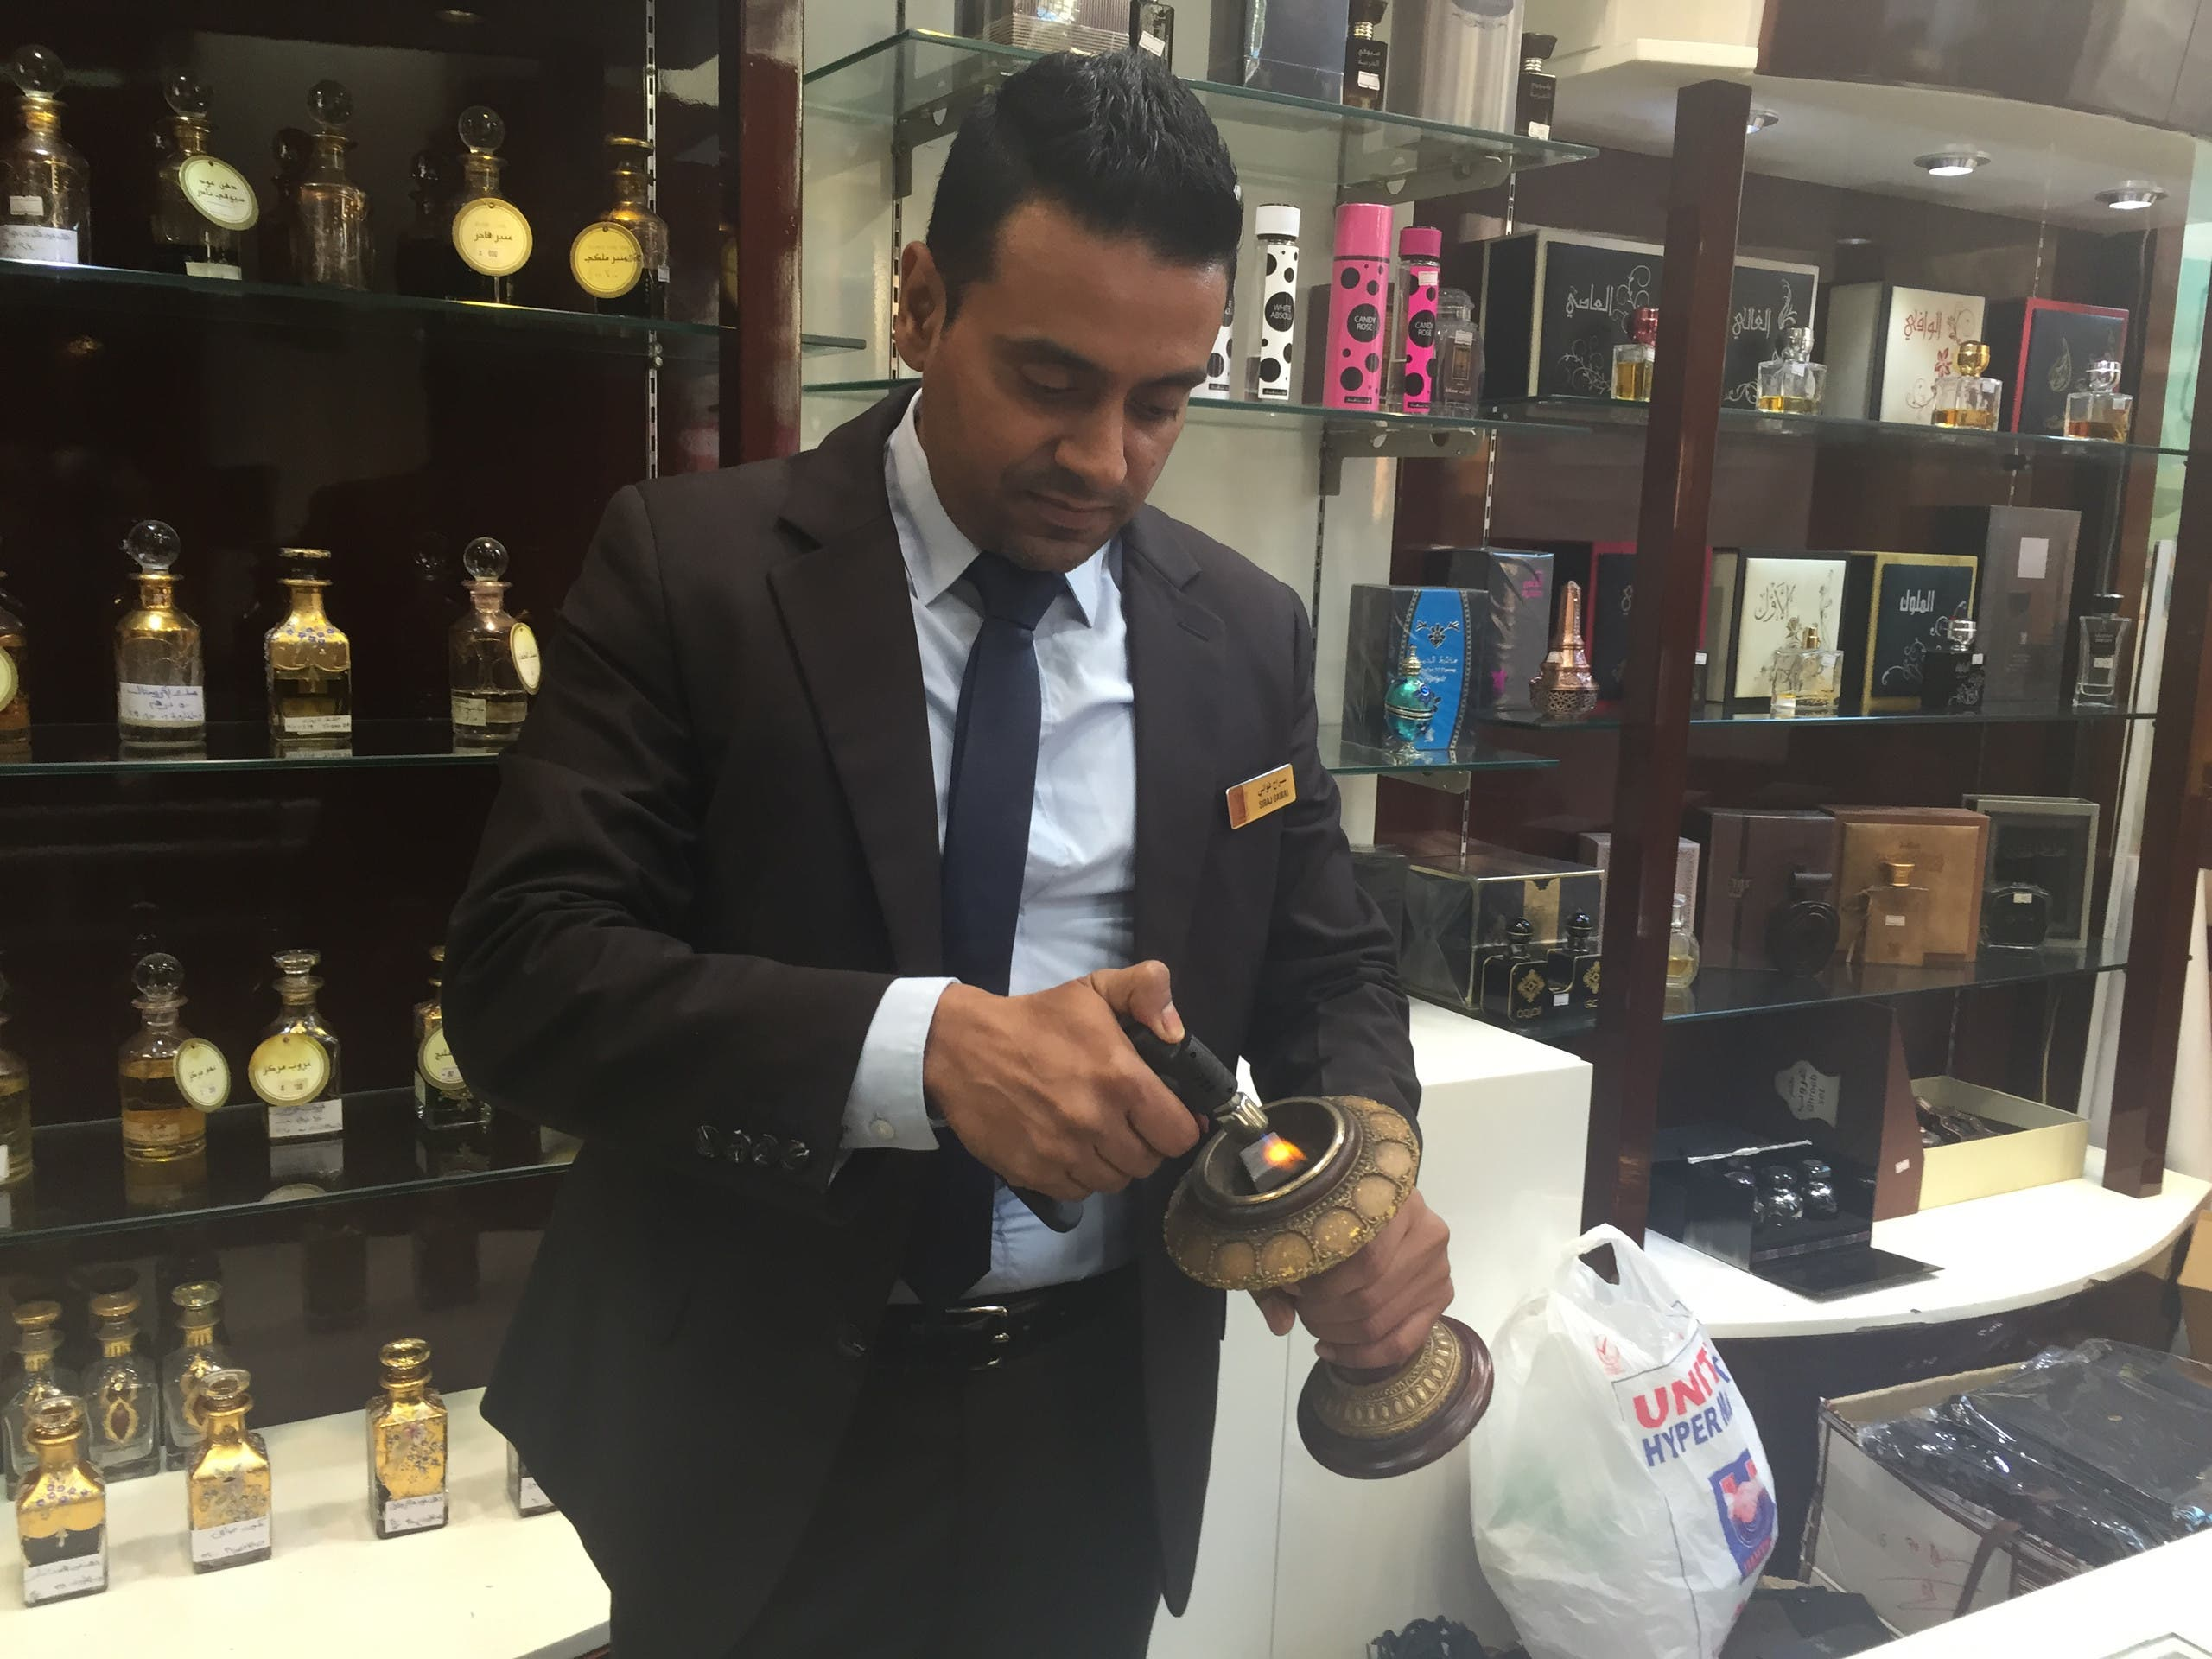 Siraj Hassan Gawai, a branch manager and sales supervisor at Arabian Oud in Dubai demonstrates the burning of the oud. (Ismaeel Naar/Al Arabiya English)